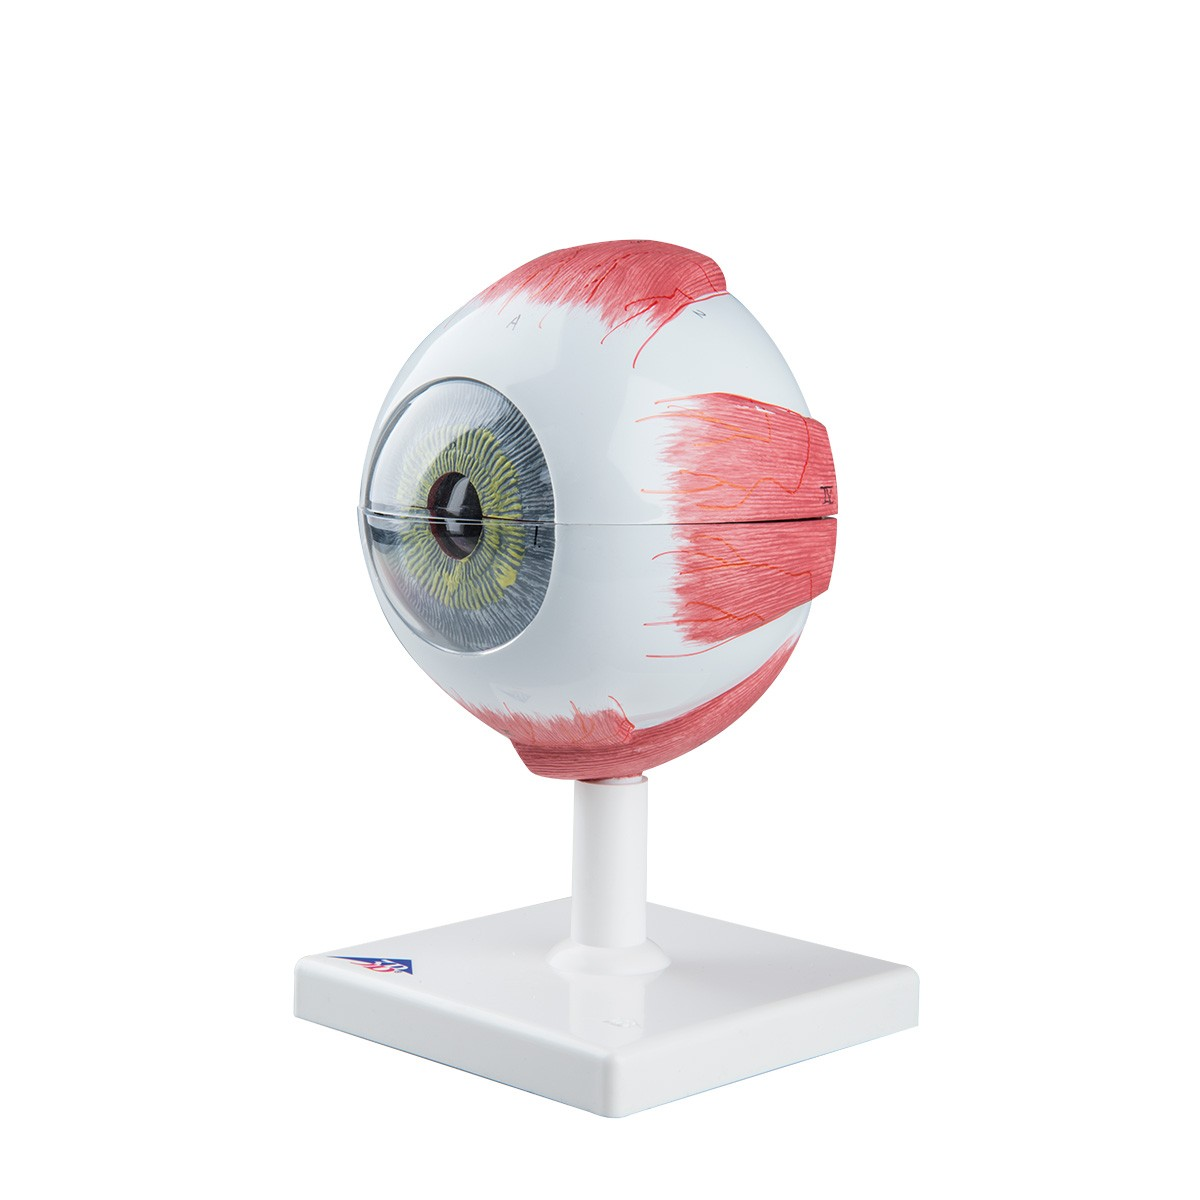 3B Giant Eye Model - Sense Organs - Human Anatomy - Biology